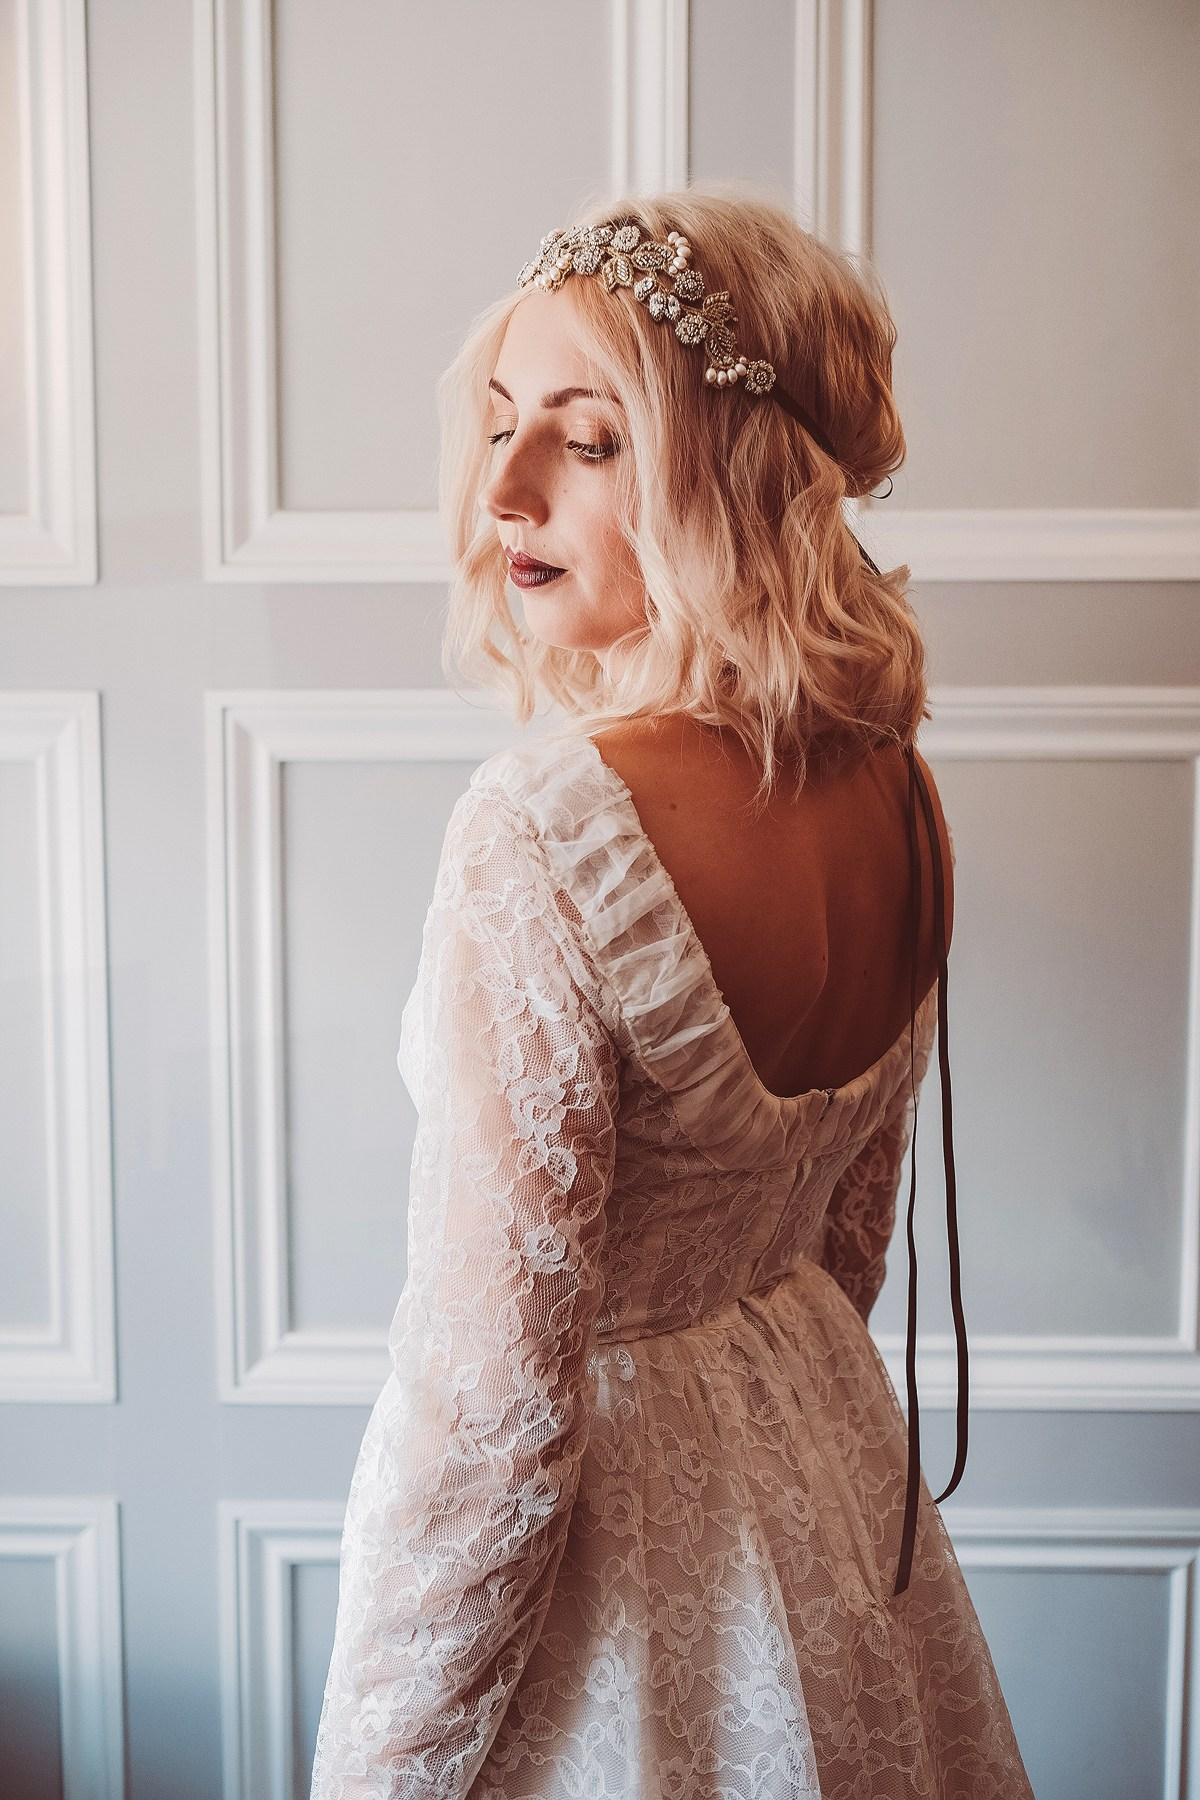 Vintage wedding dresses and bridal fashion from the 1940's, 1950's, 1960's and 1970's, from Story of My Dress. Images by Lemonade Pictures.